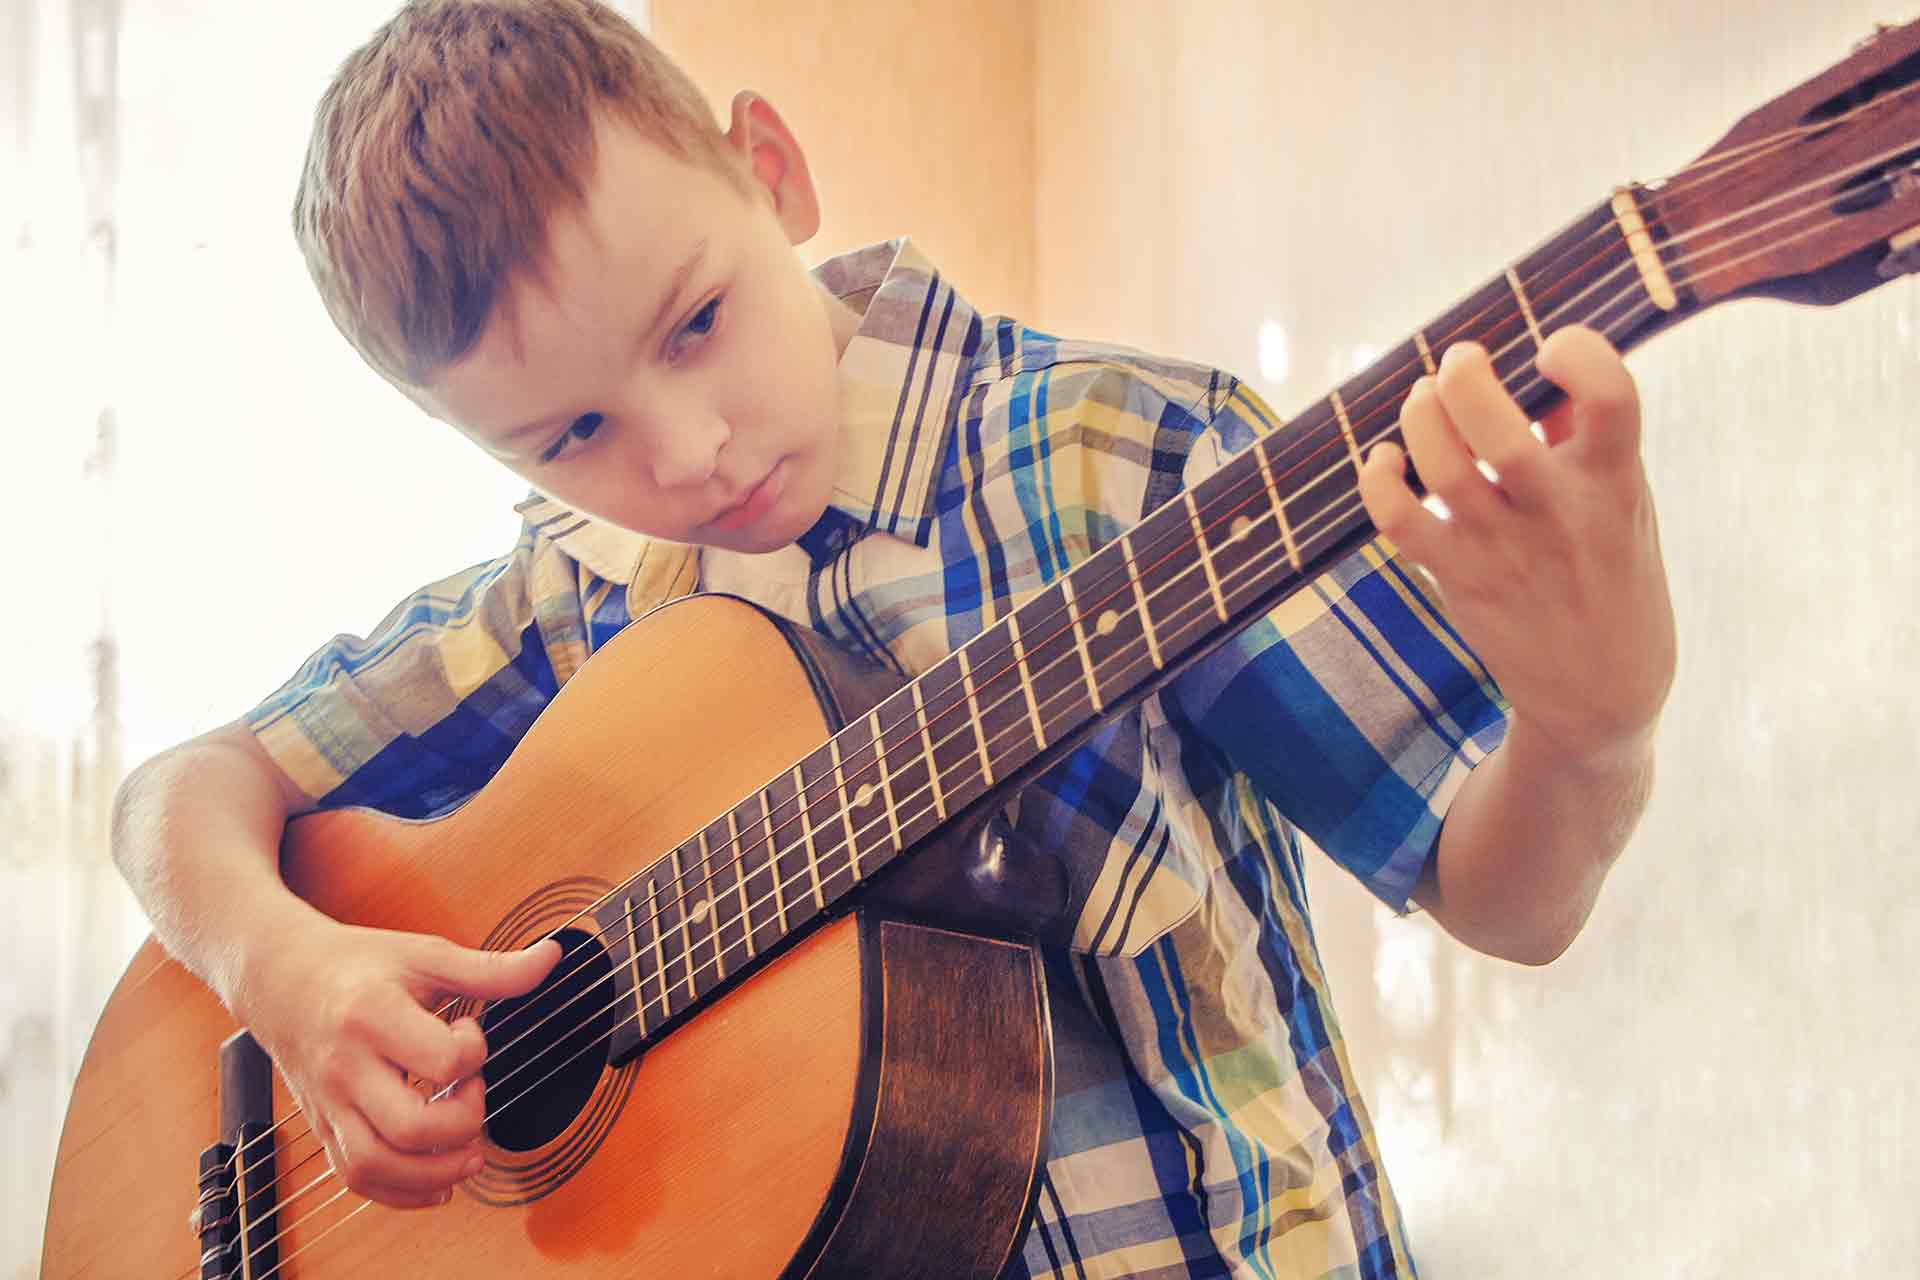 The-effects-of-music-on-childhood-development